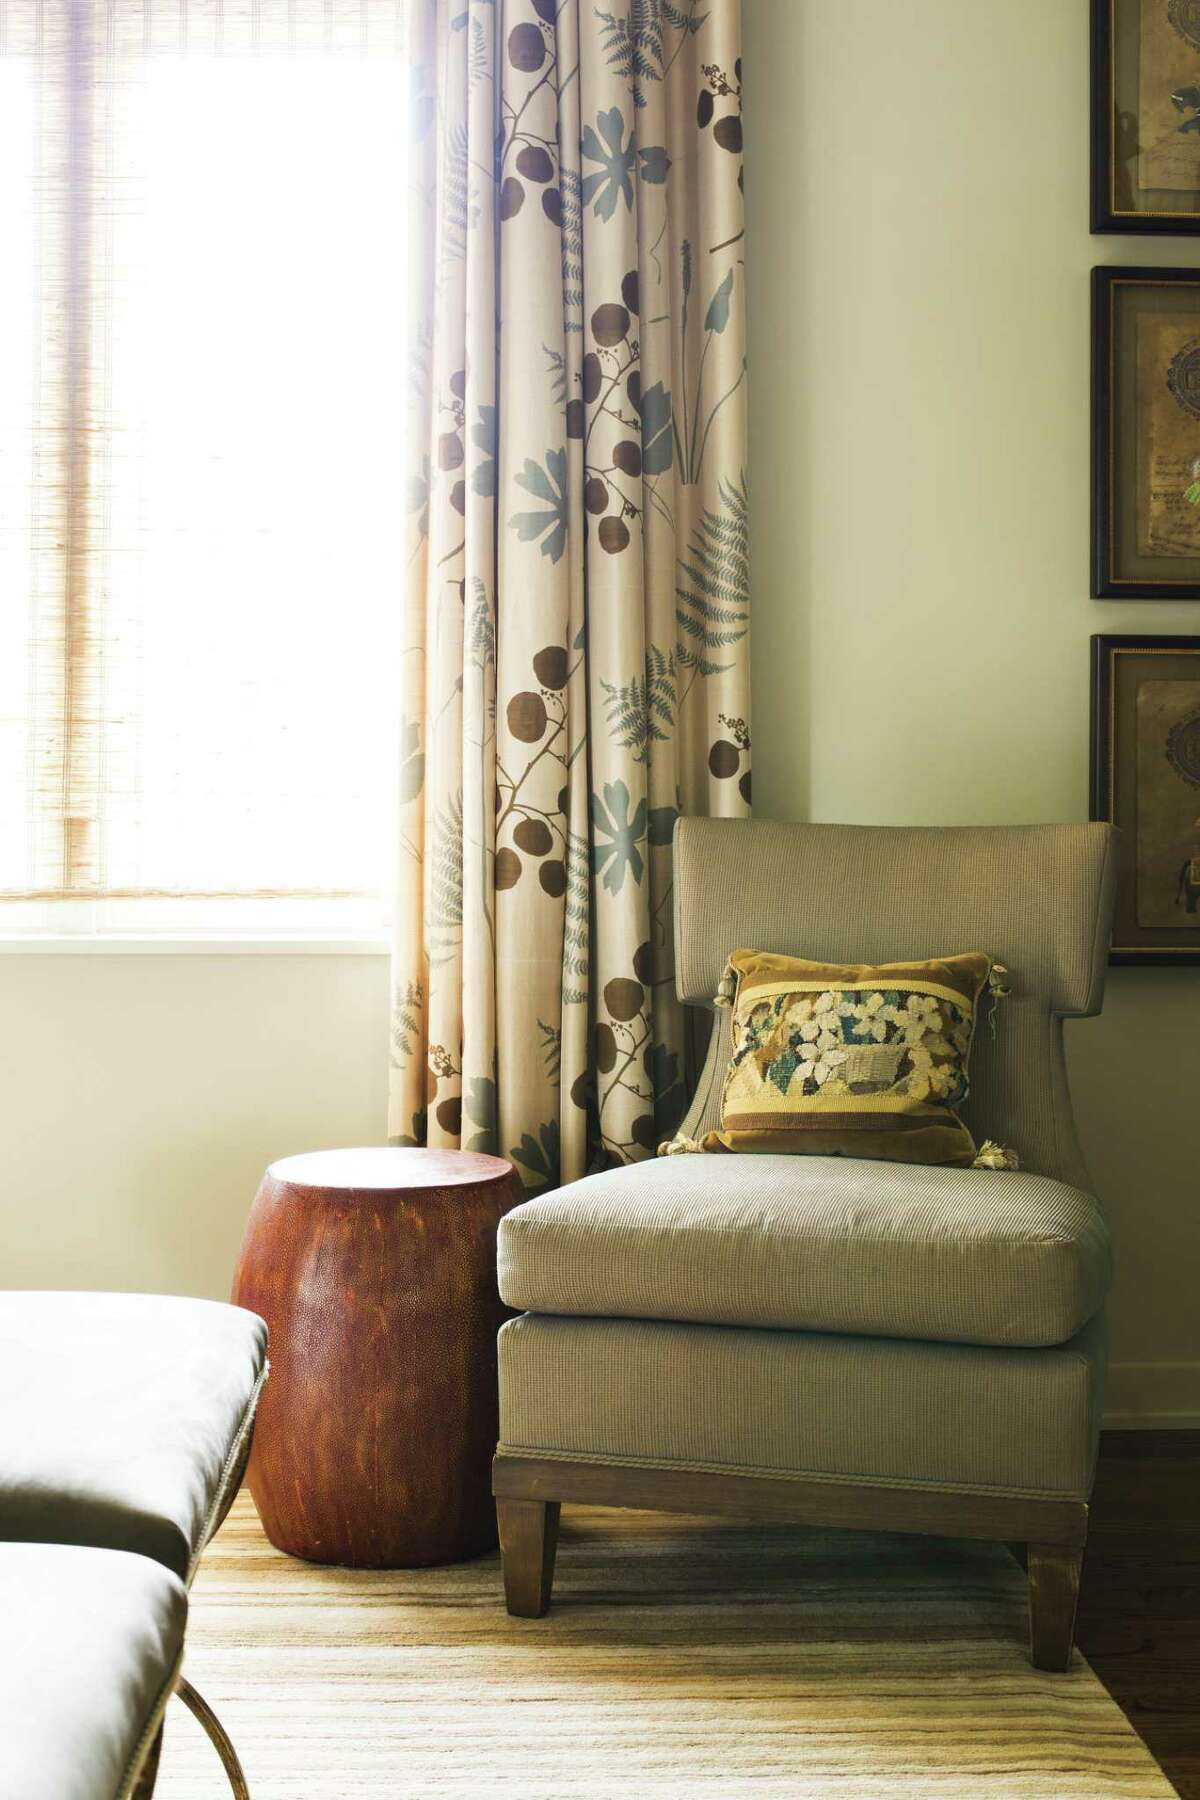 Trends in draperies are getting more interesting, says Linda Eyles of Linda Eyles Design. They're not just white panels meant to invisibly soften a room, many people are opting for draperies with patterns or bolder colors.